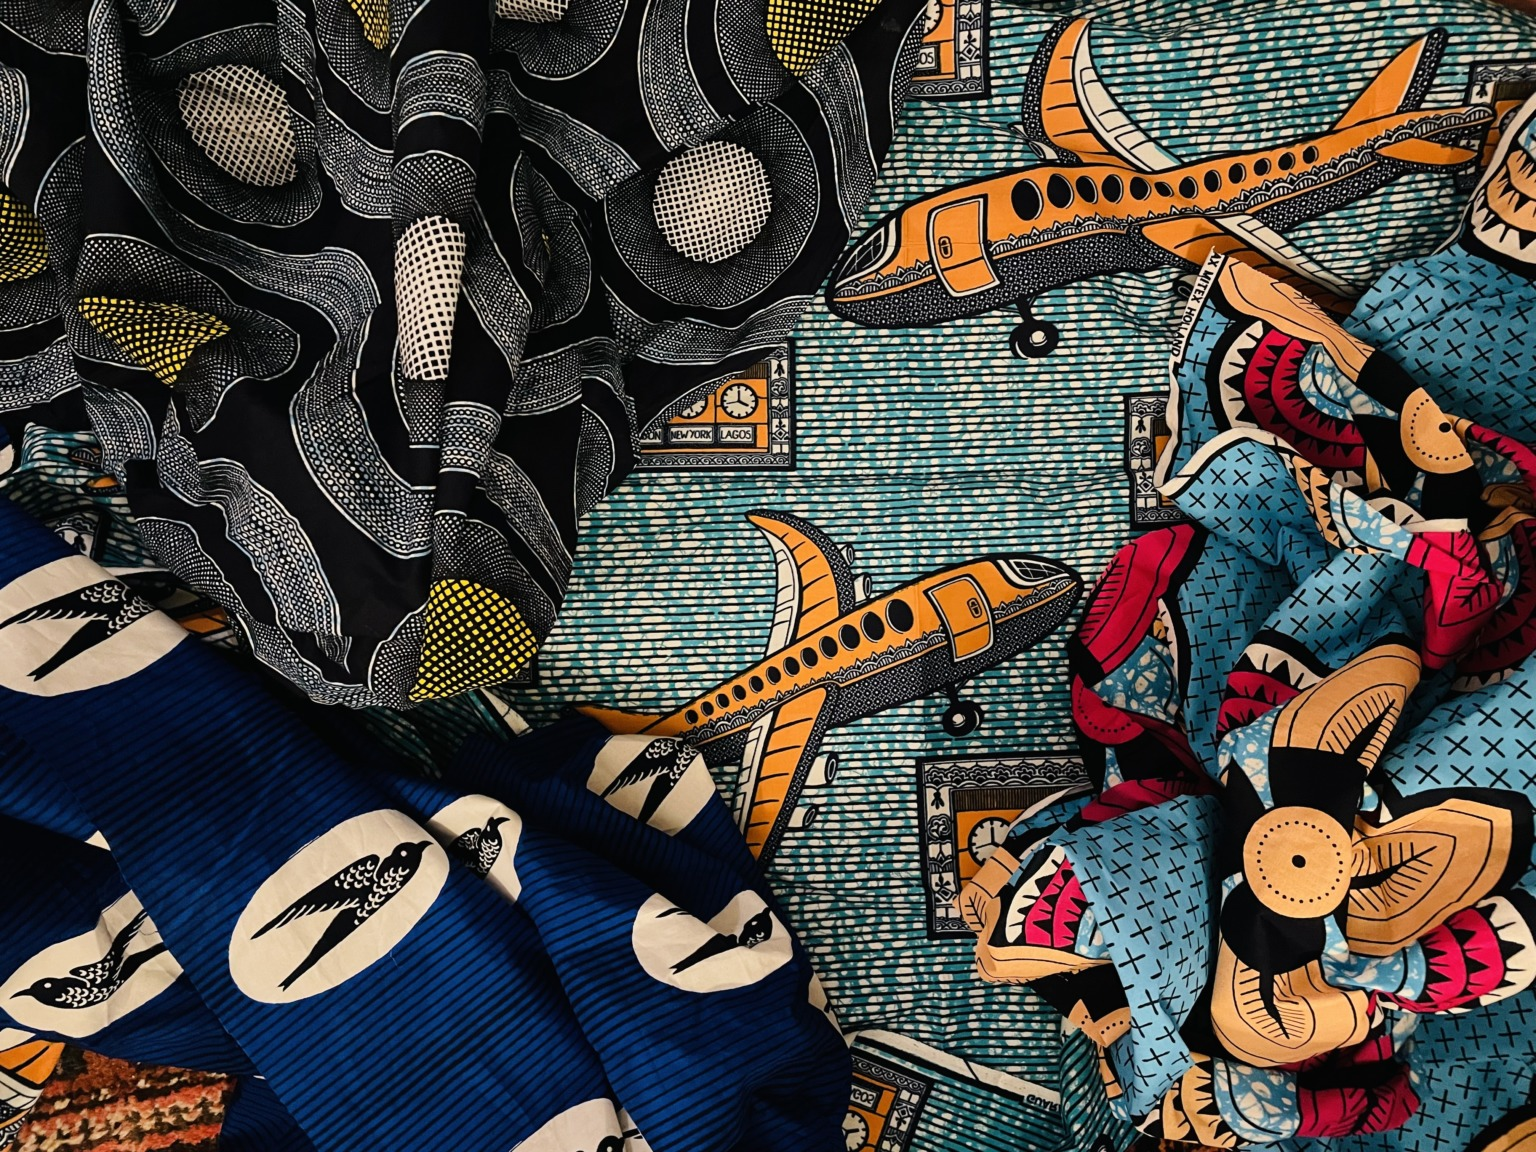 Close up of various brightly coloured African printed fabrics, including one with a pattern of an orange aeroplane, another with a bird, and others with abstract patterns.